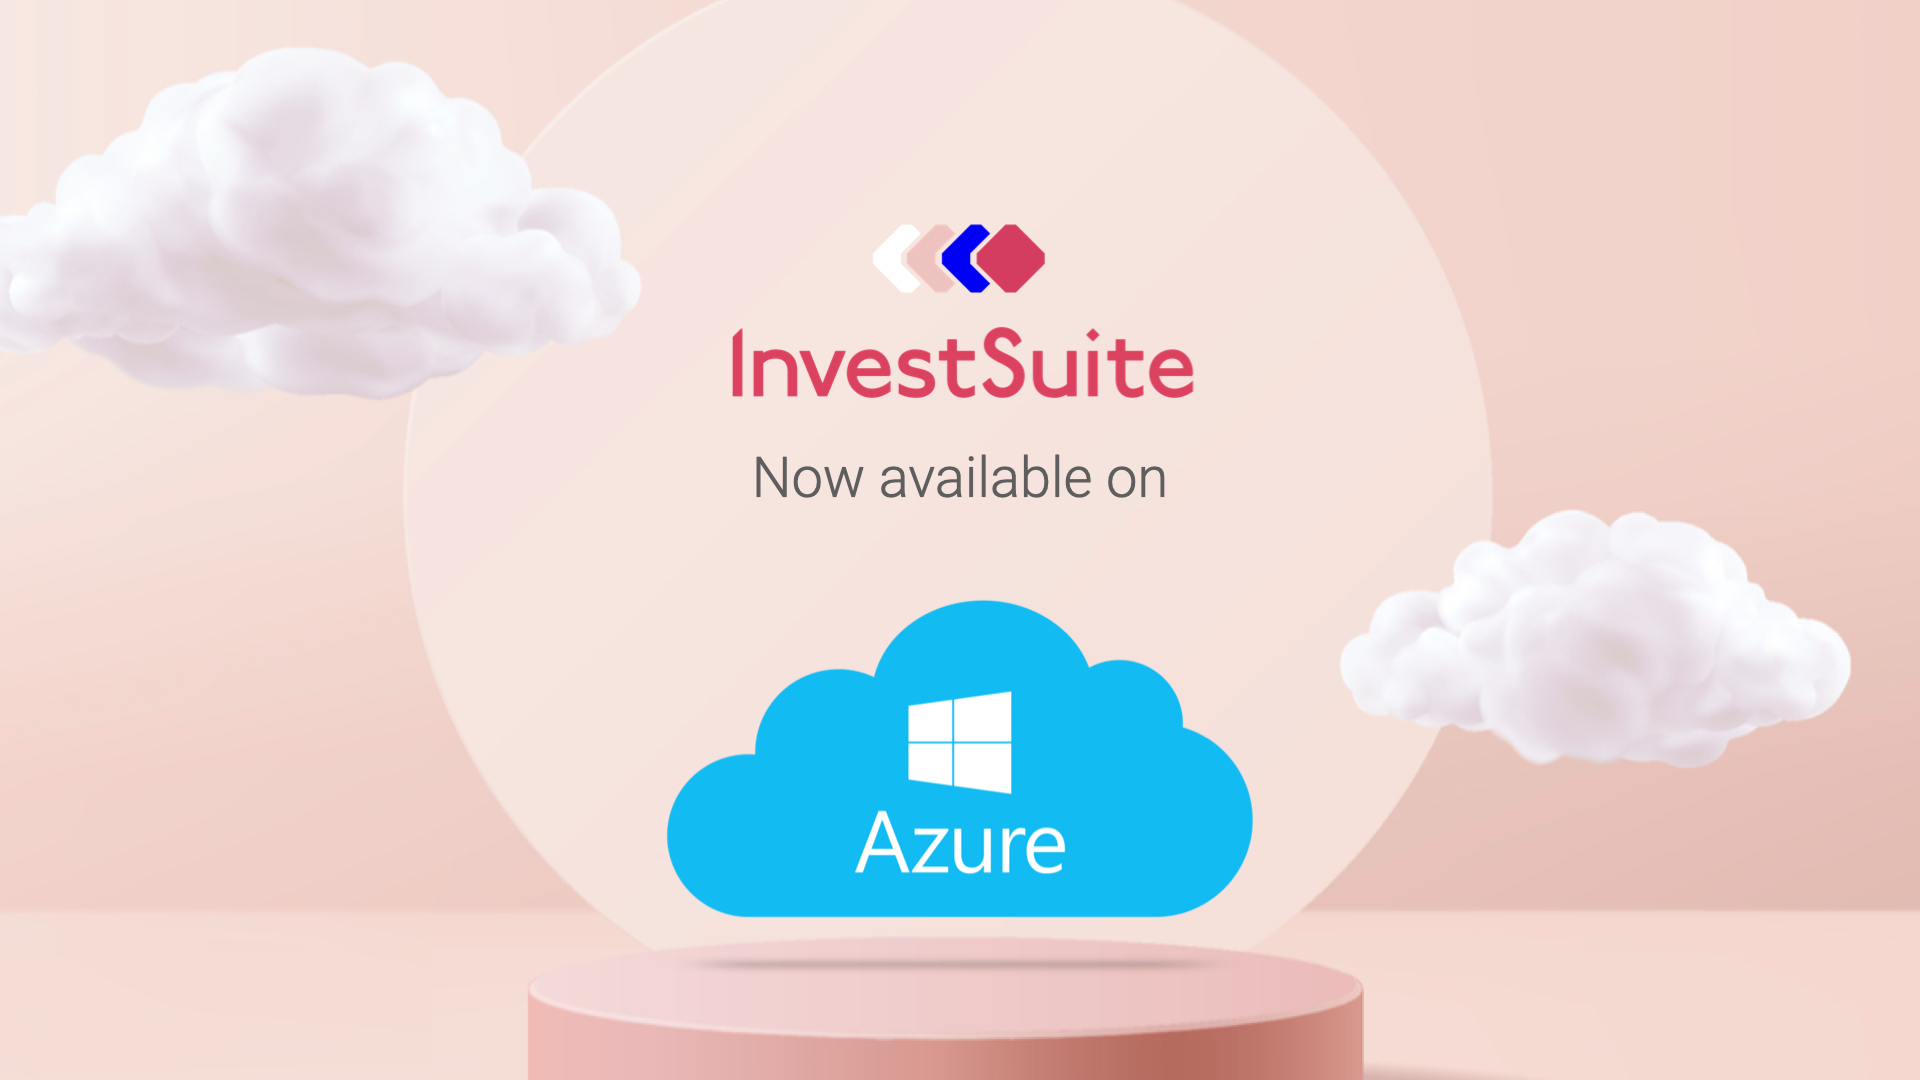 InvestSuite's B2B WealthTech solutions are now available in the Microsoft Azure Marketplace